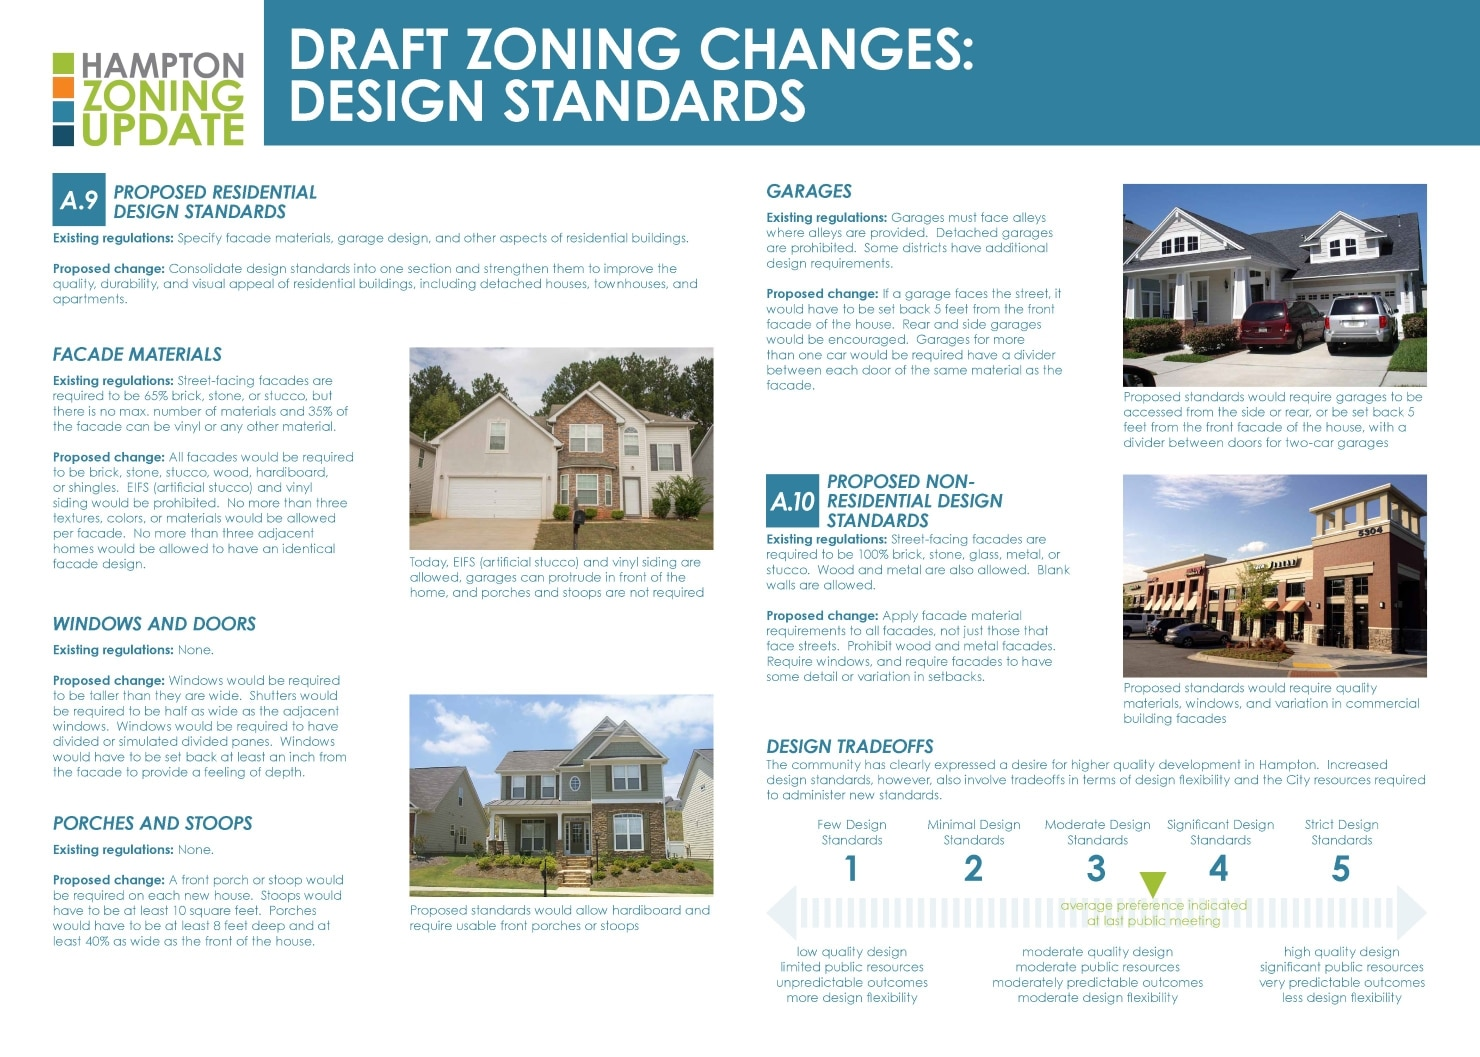 TSW Hampton-Zoning-Update-8 City of Hampton Zoning Update    TSW